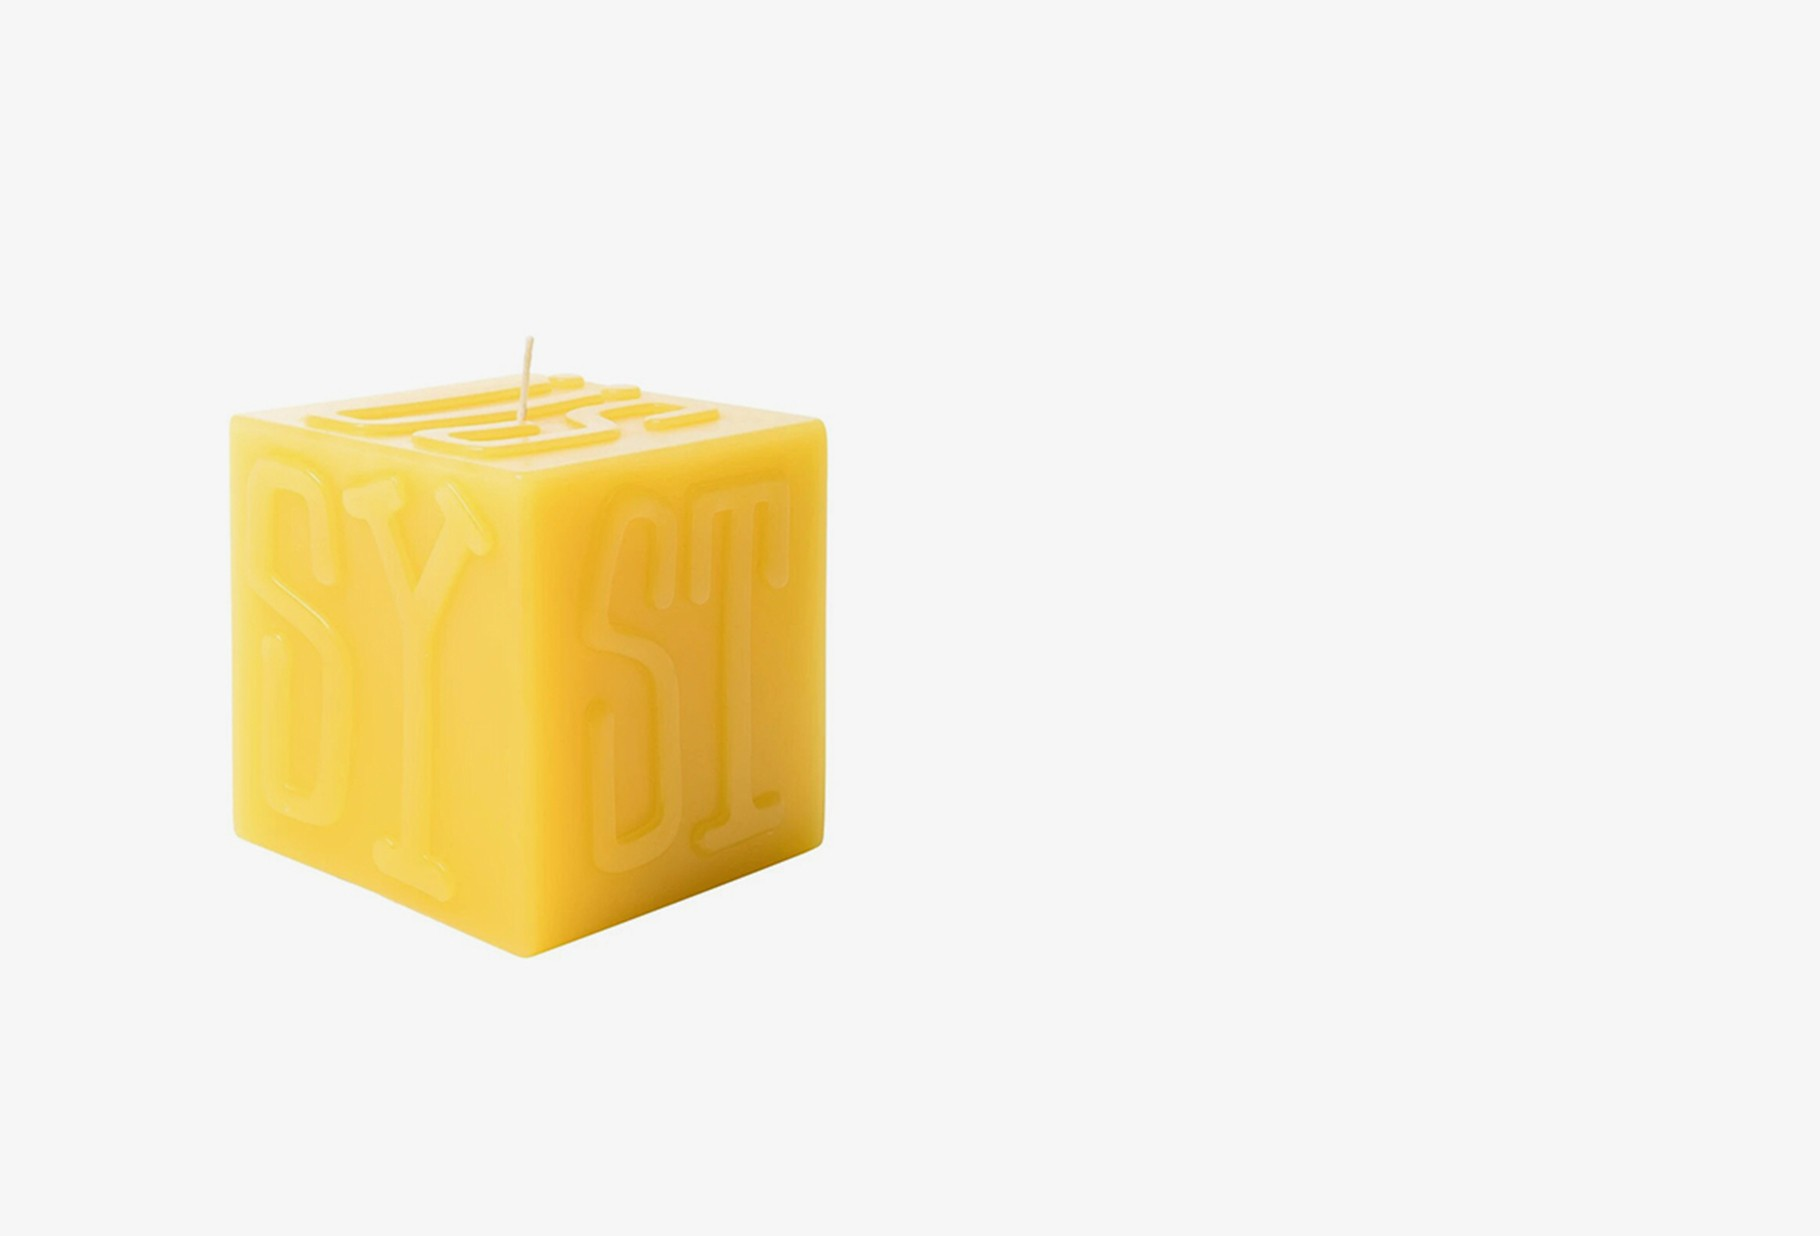 STUSSY / Stussy cube candle Yellow